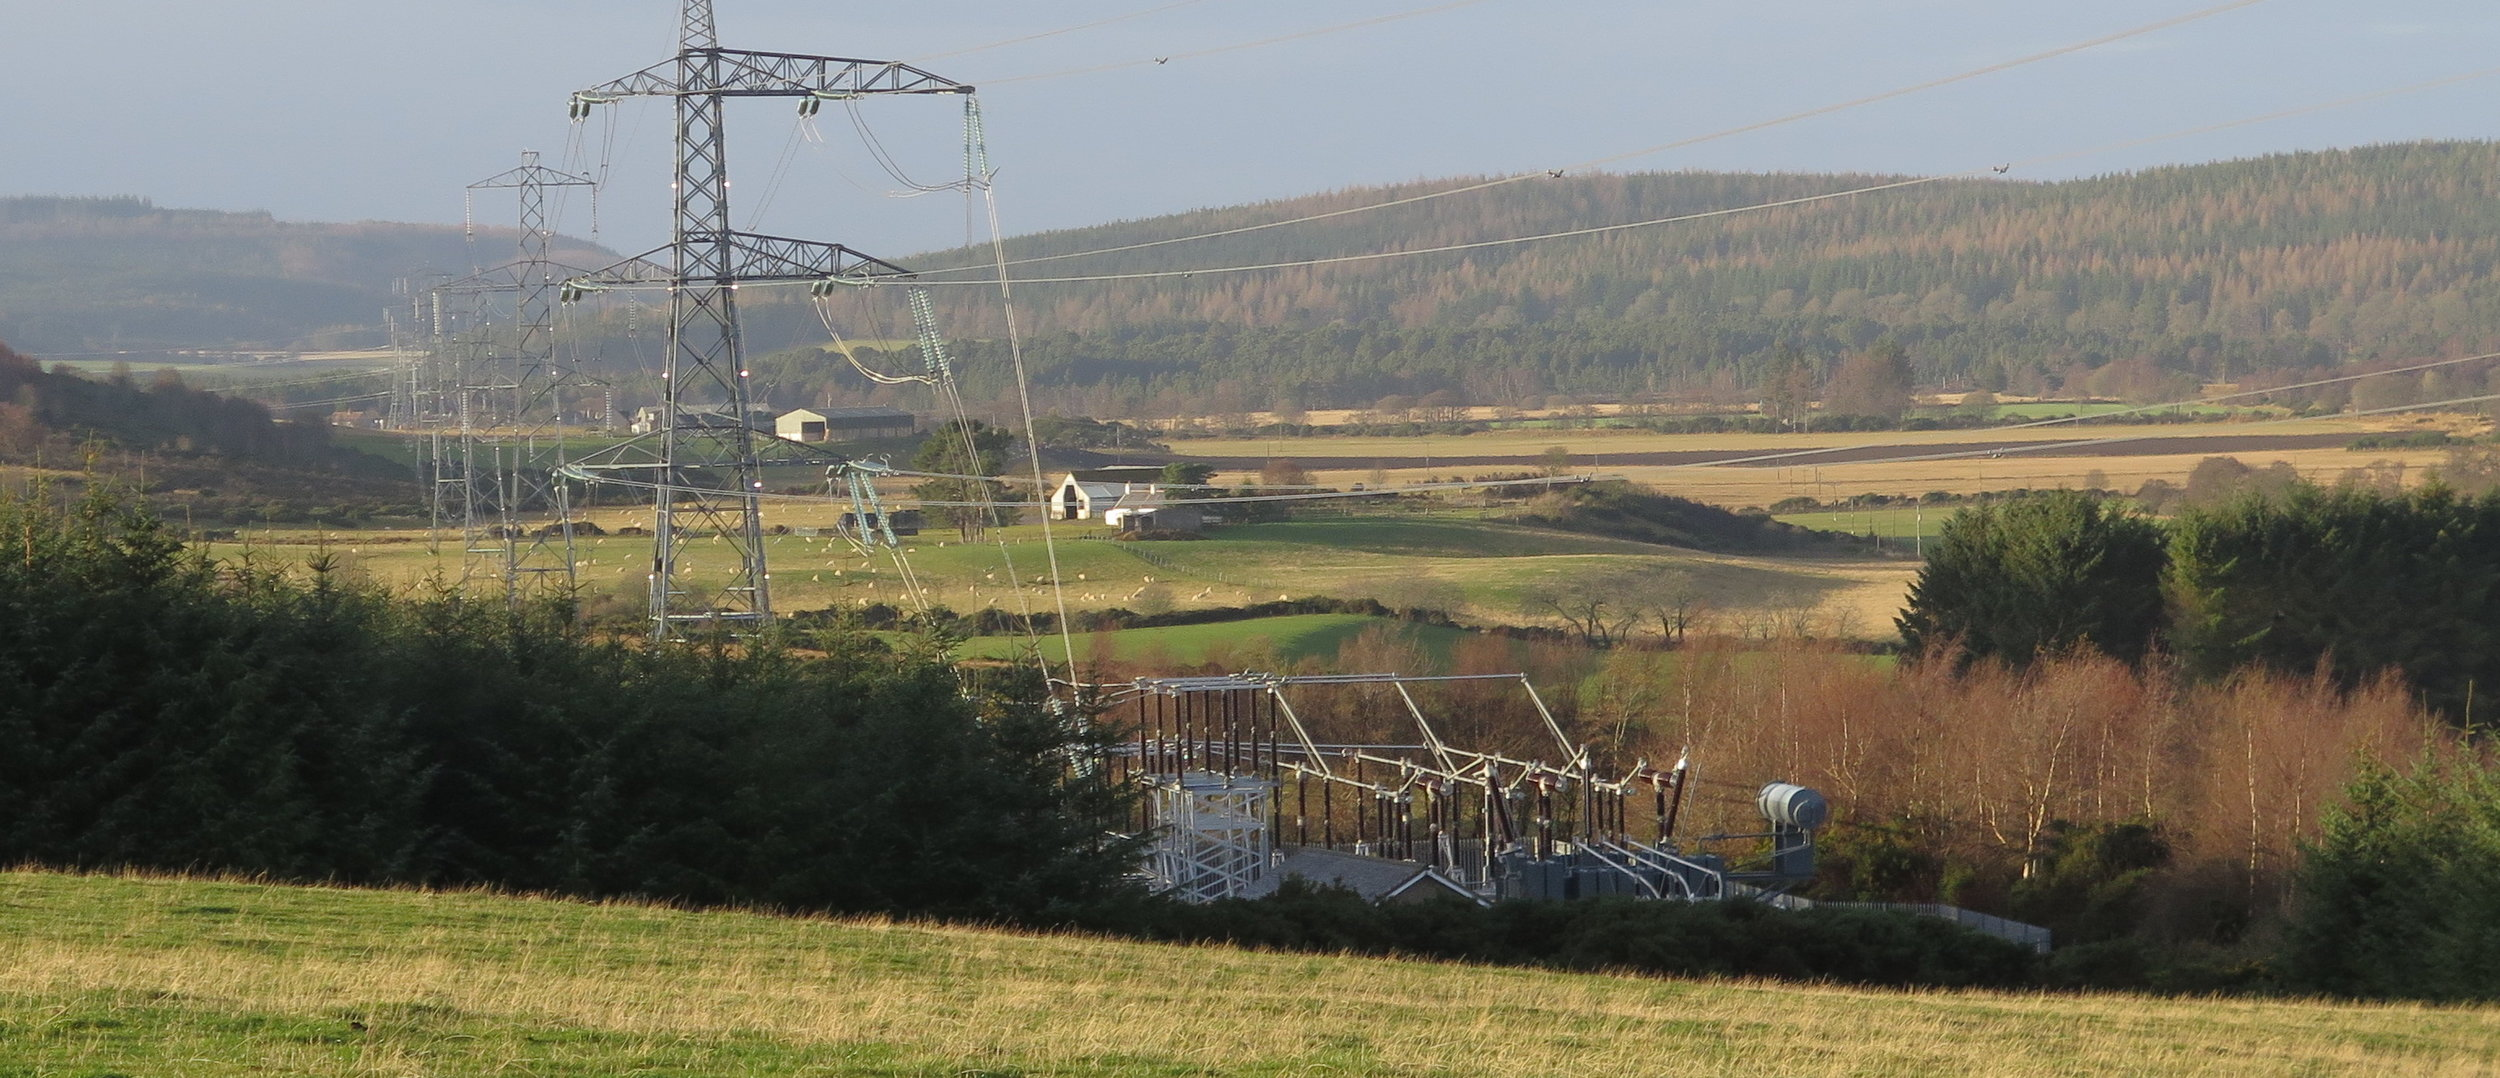 New developments are likely to need additional pylon lines & substations across Moray